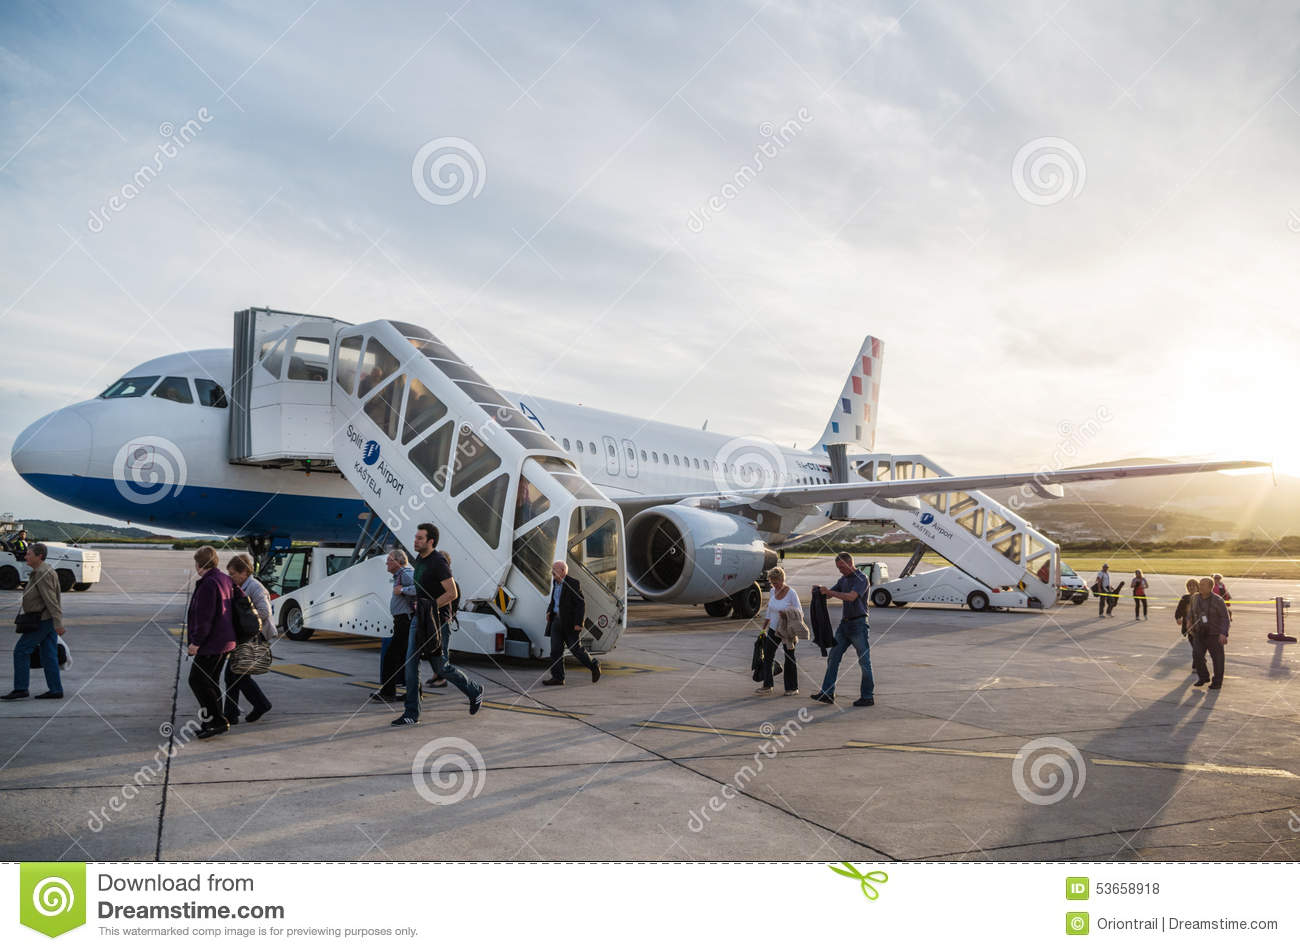 SPLIT, CROATIA - MARCH 6, 2015: Passengers exiting Croatia Airlines  Airbus A320 parked on a runway of Split Airport